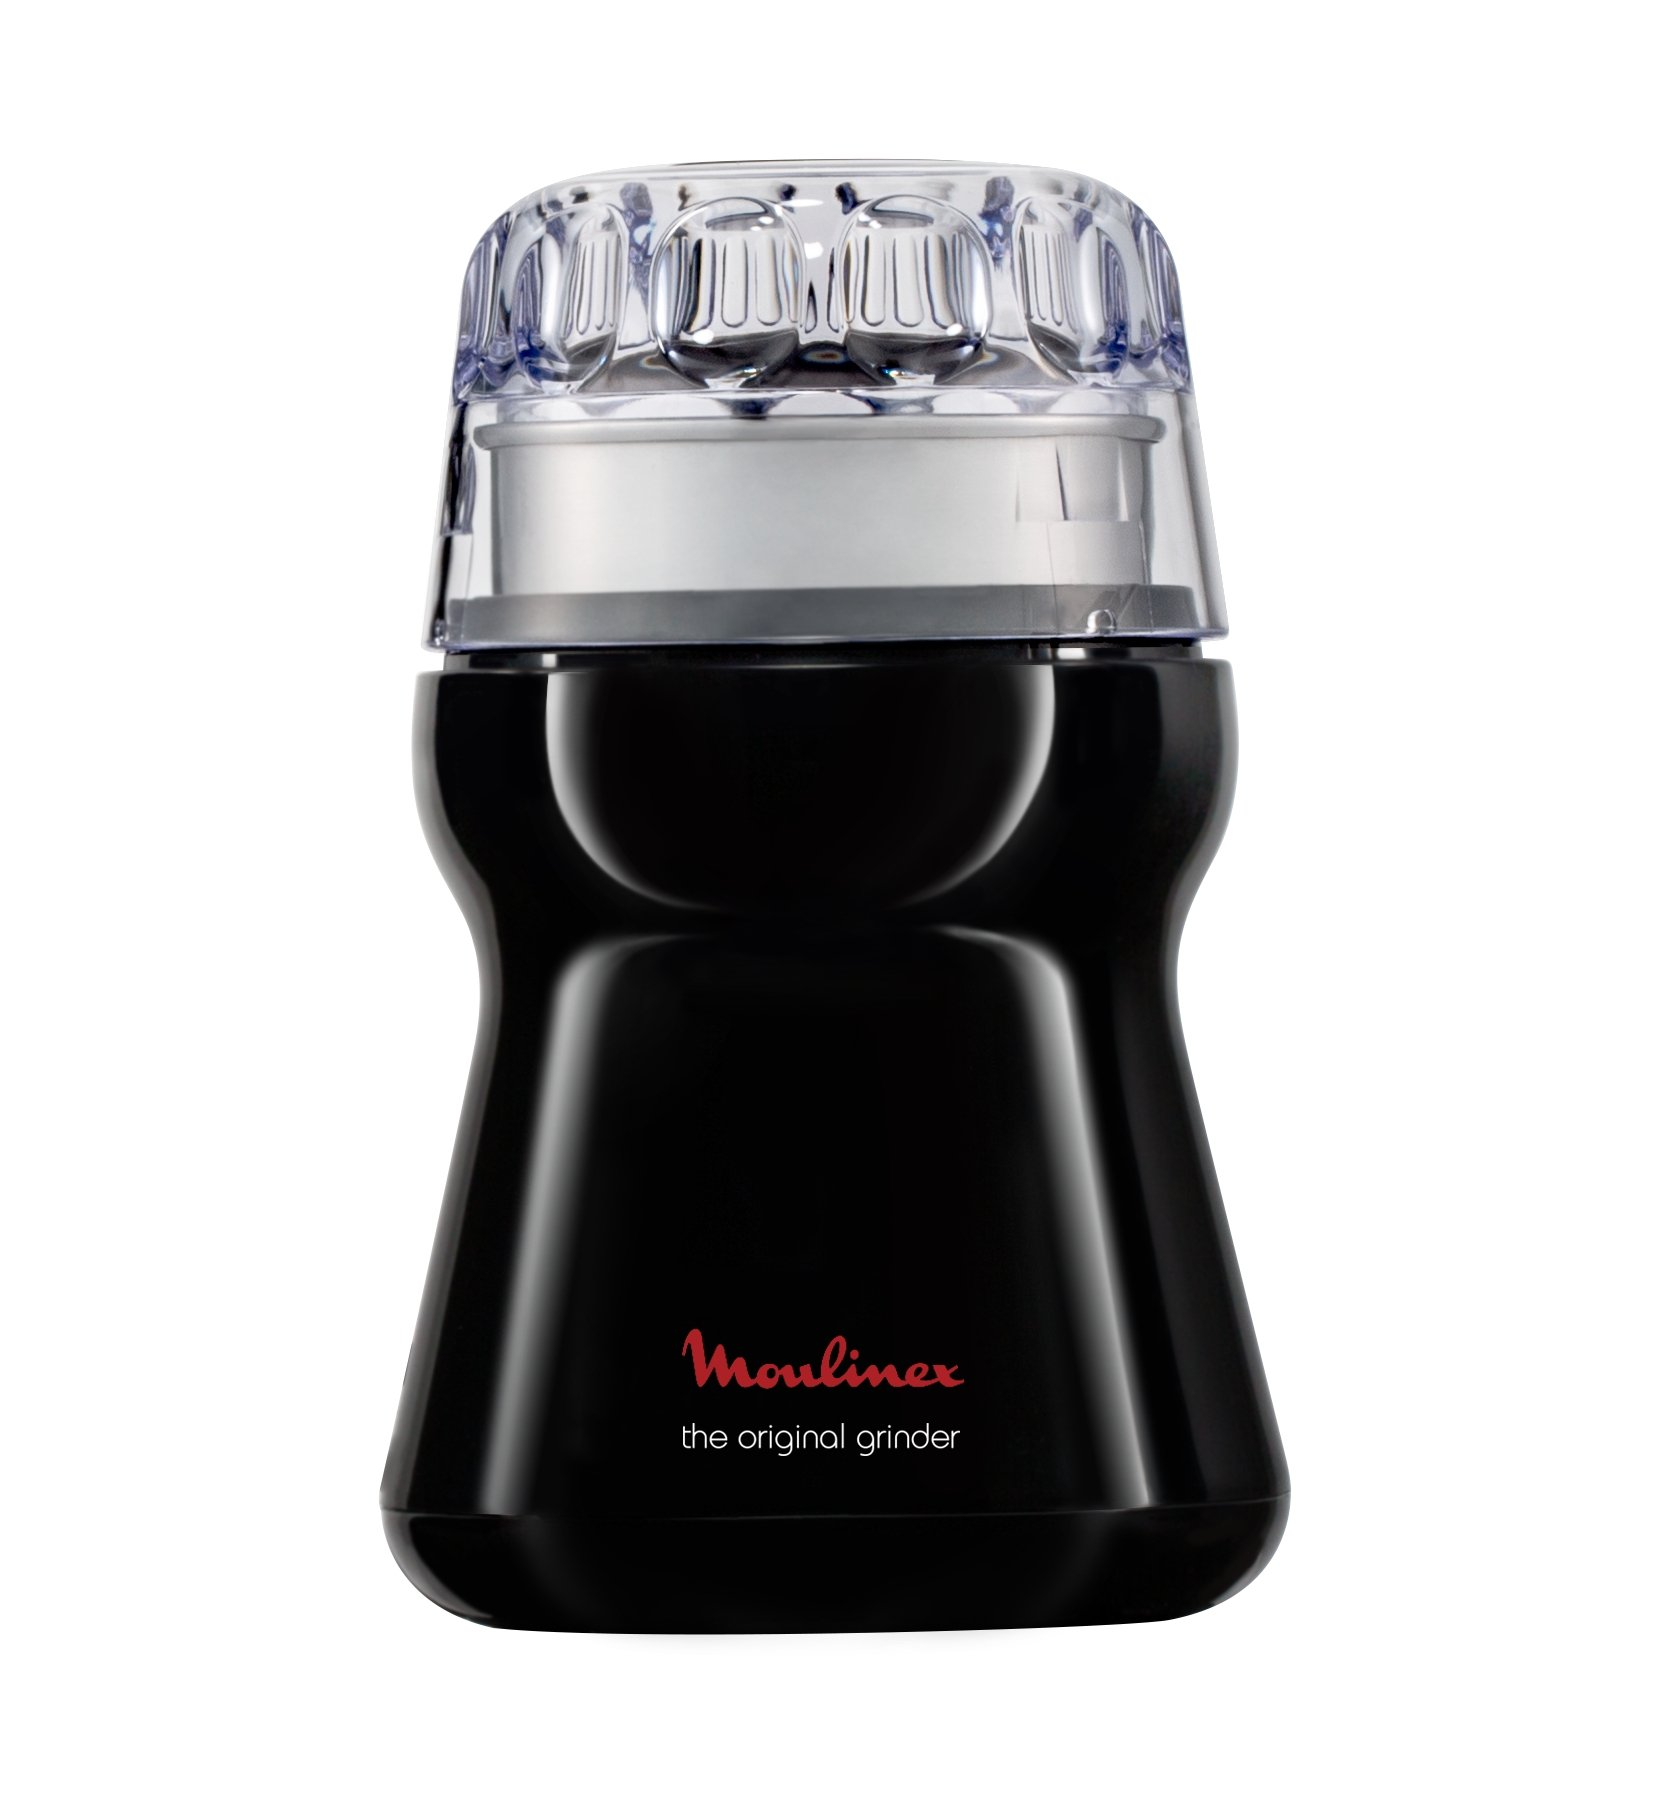 Moulinex ar110830 Black All Types Of Grains Dehli (Coffee Spices Nuts Grinder) - 180 W by Moulinex